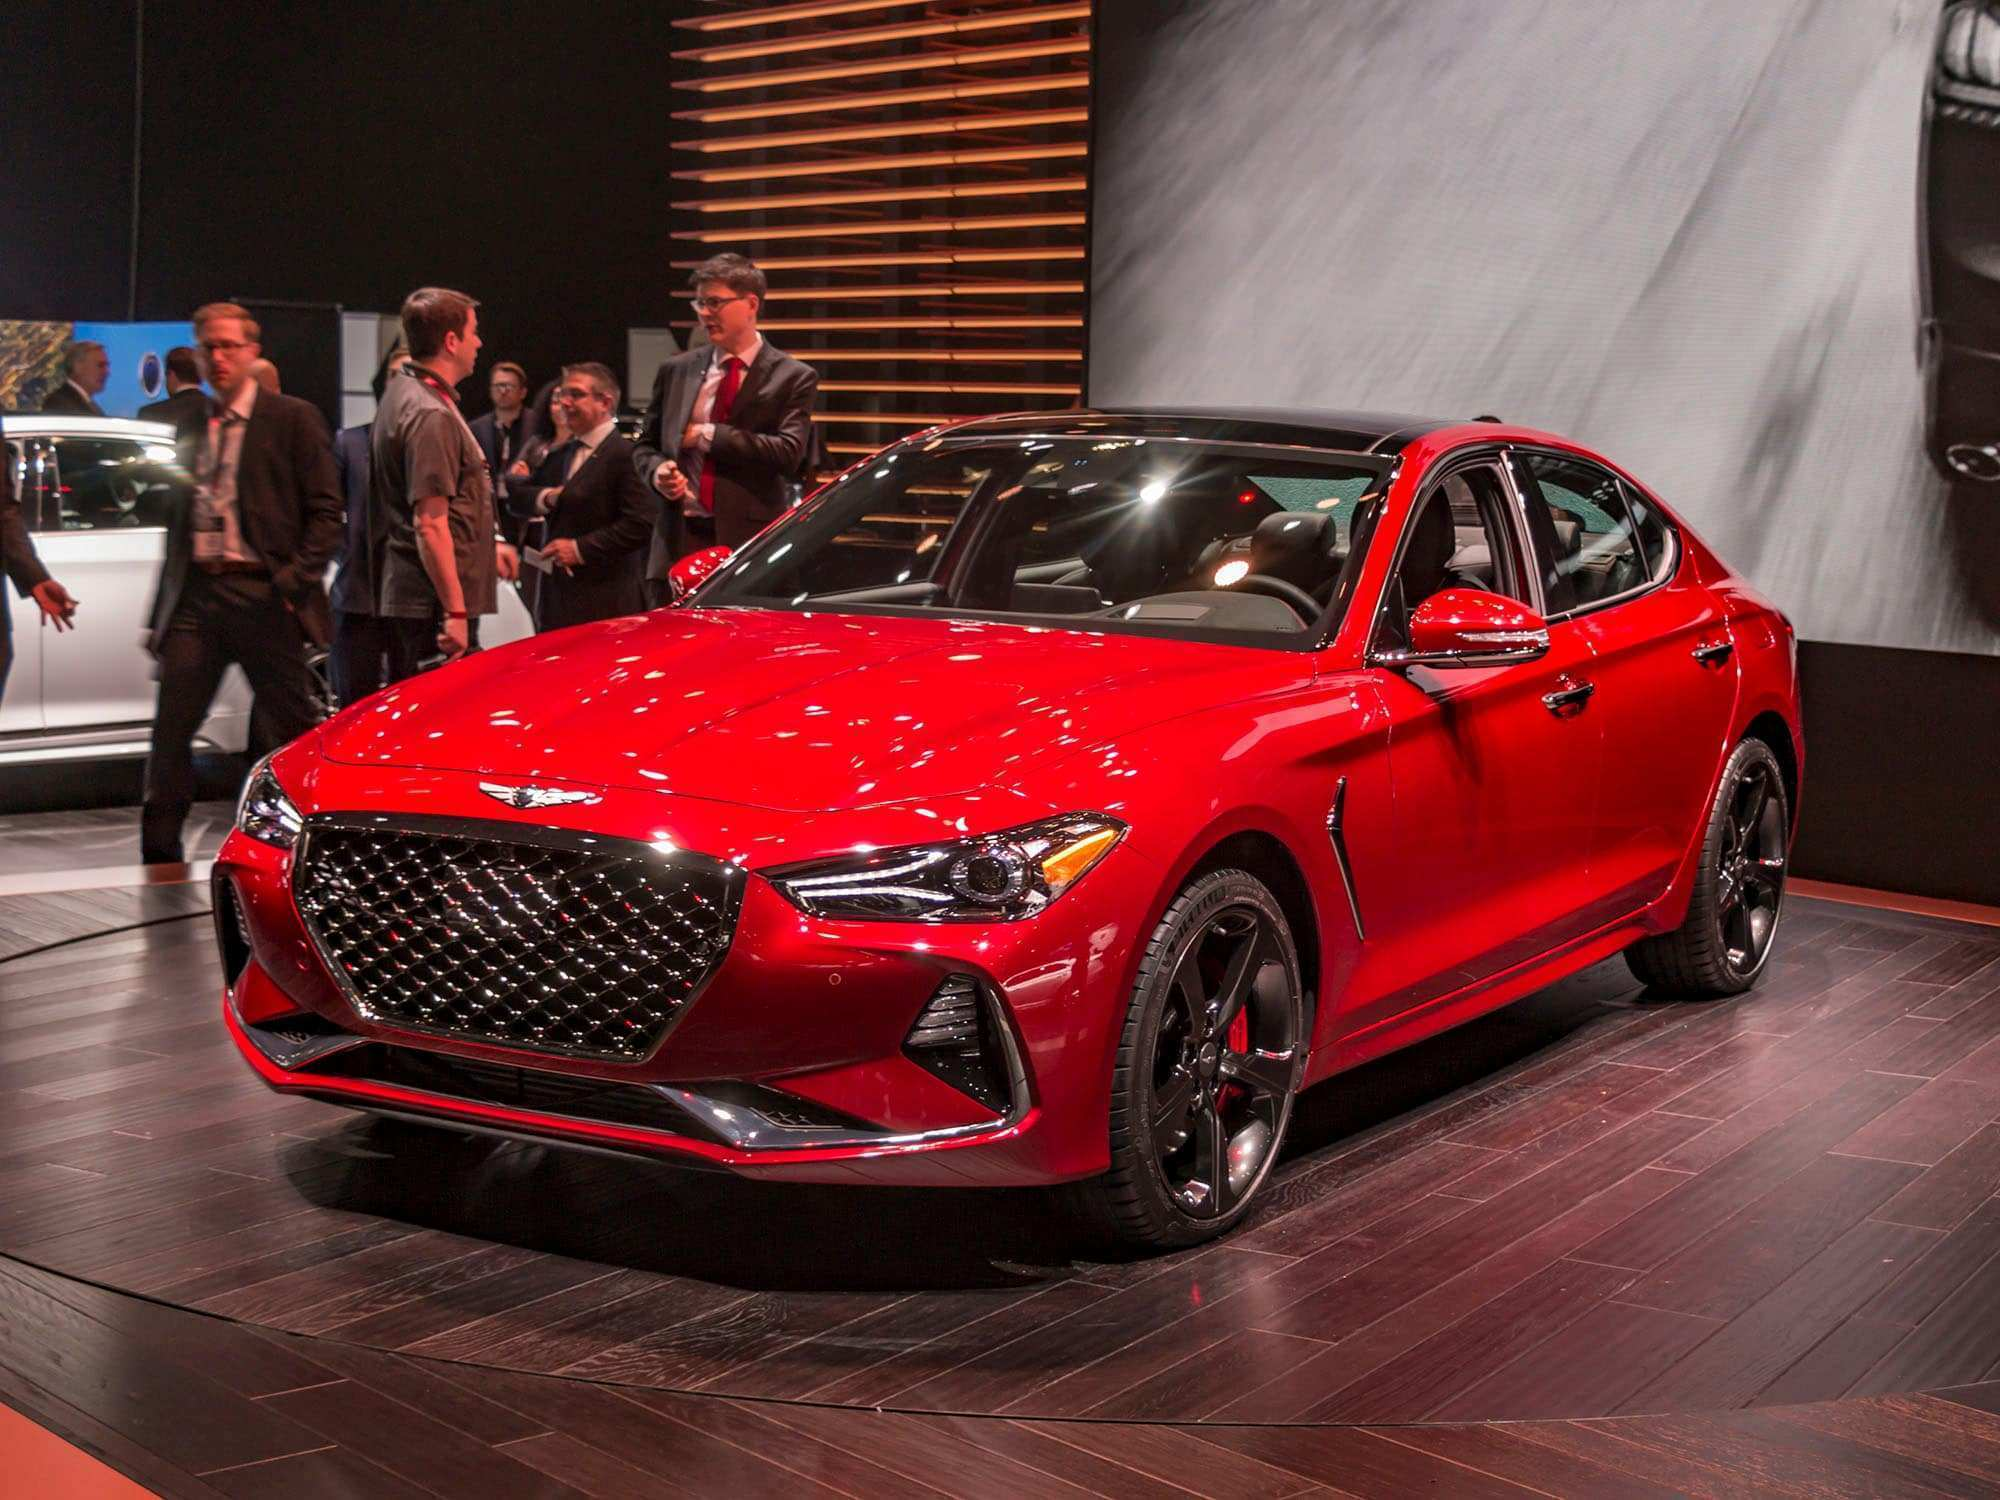 46 All New 2019 Genesis G70 Price Redesign and Concept for 2019 Genesis G70 Price